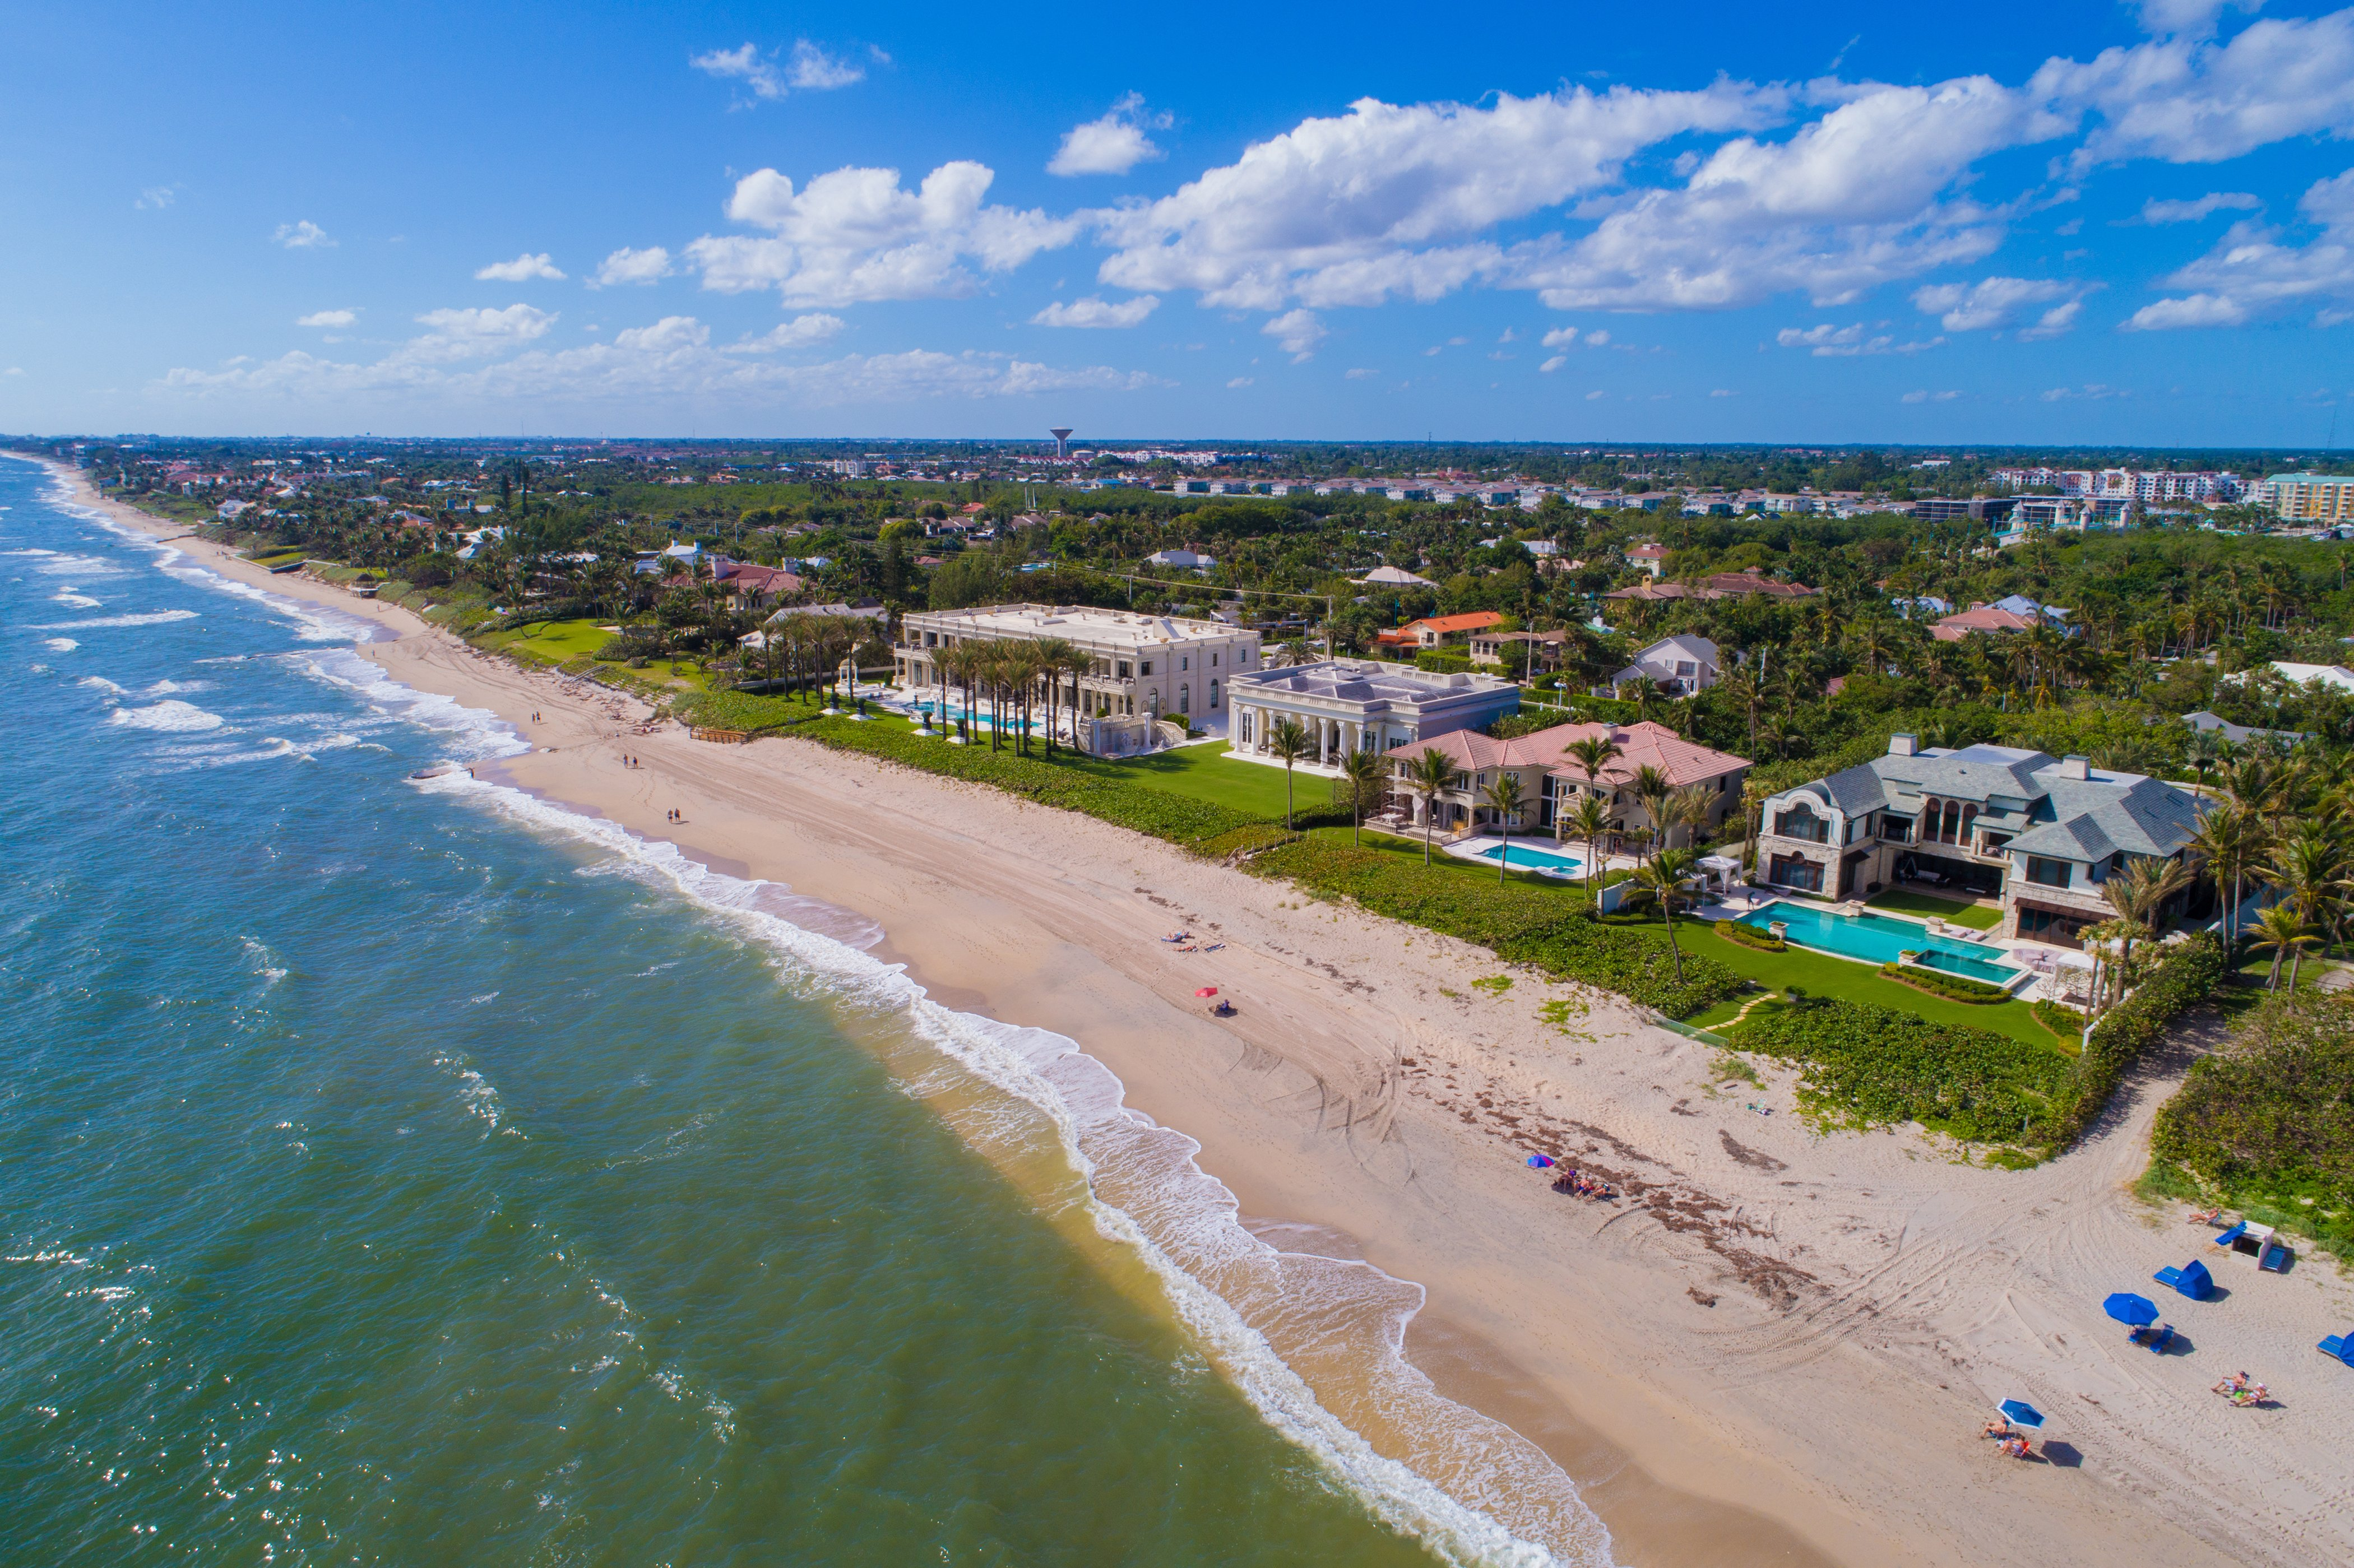 Luxury Highland Beach Real Estate For Sale - Waterfront